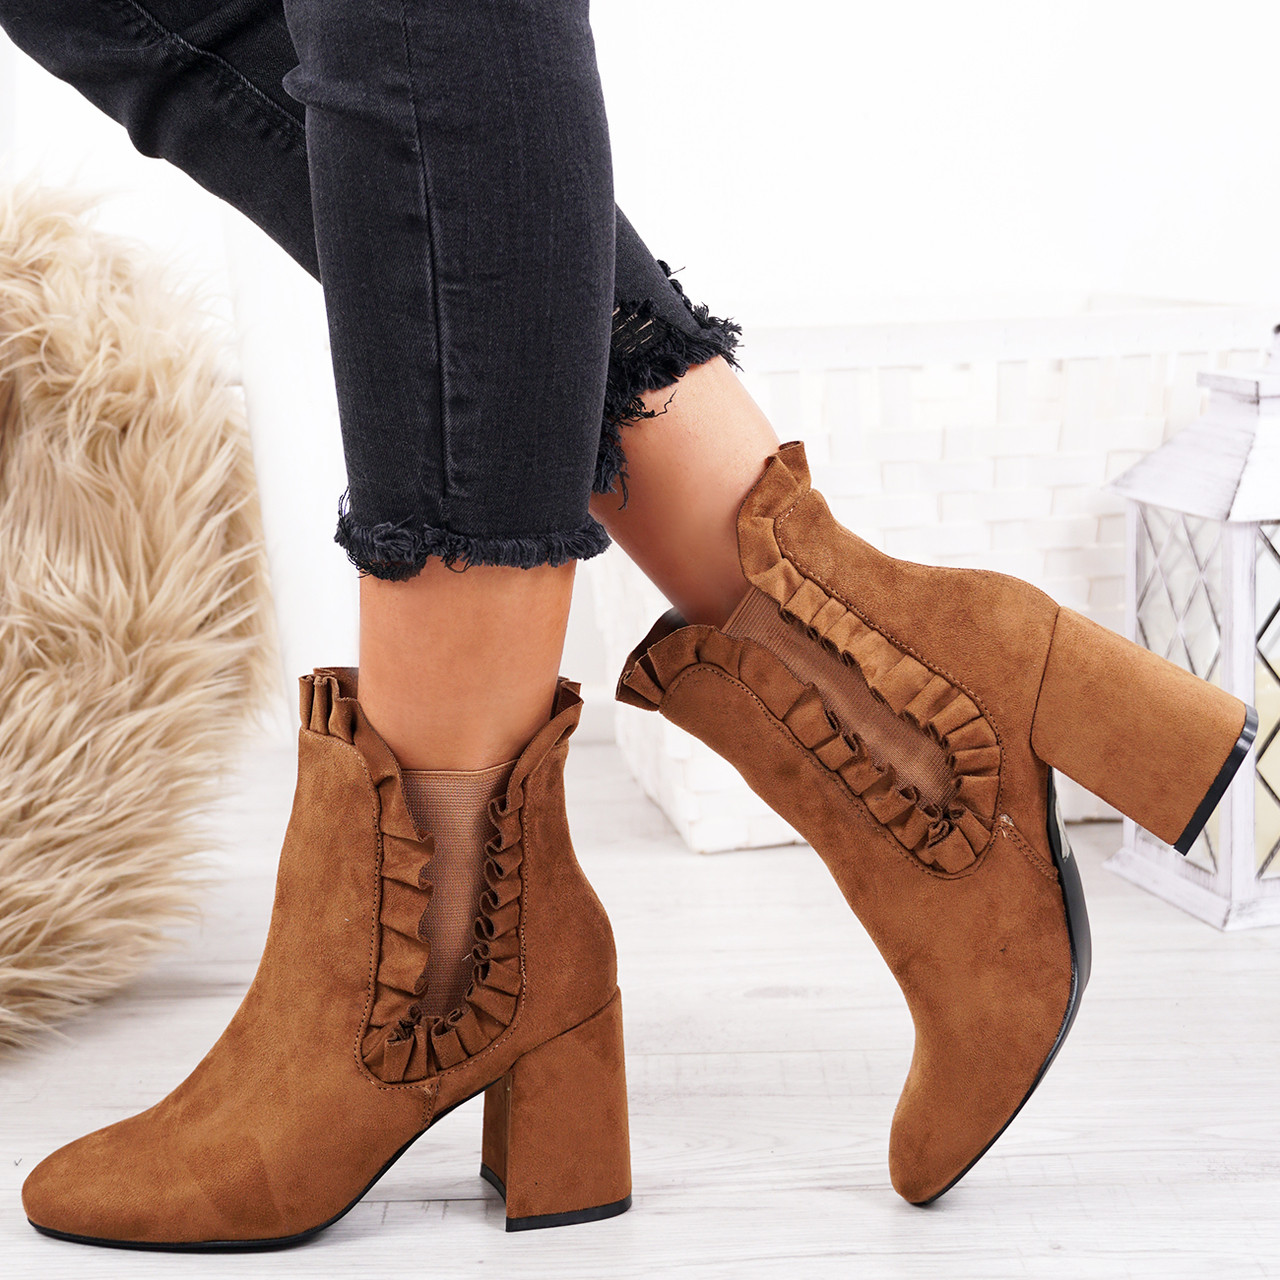 ad870009678d Womens Ladies Ruffle Ankle Boots Mid High Block Heel Chelsea Boot Shoes Size